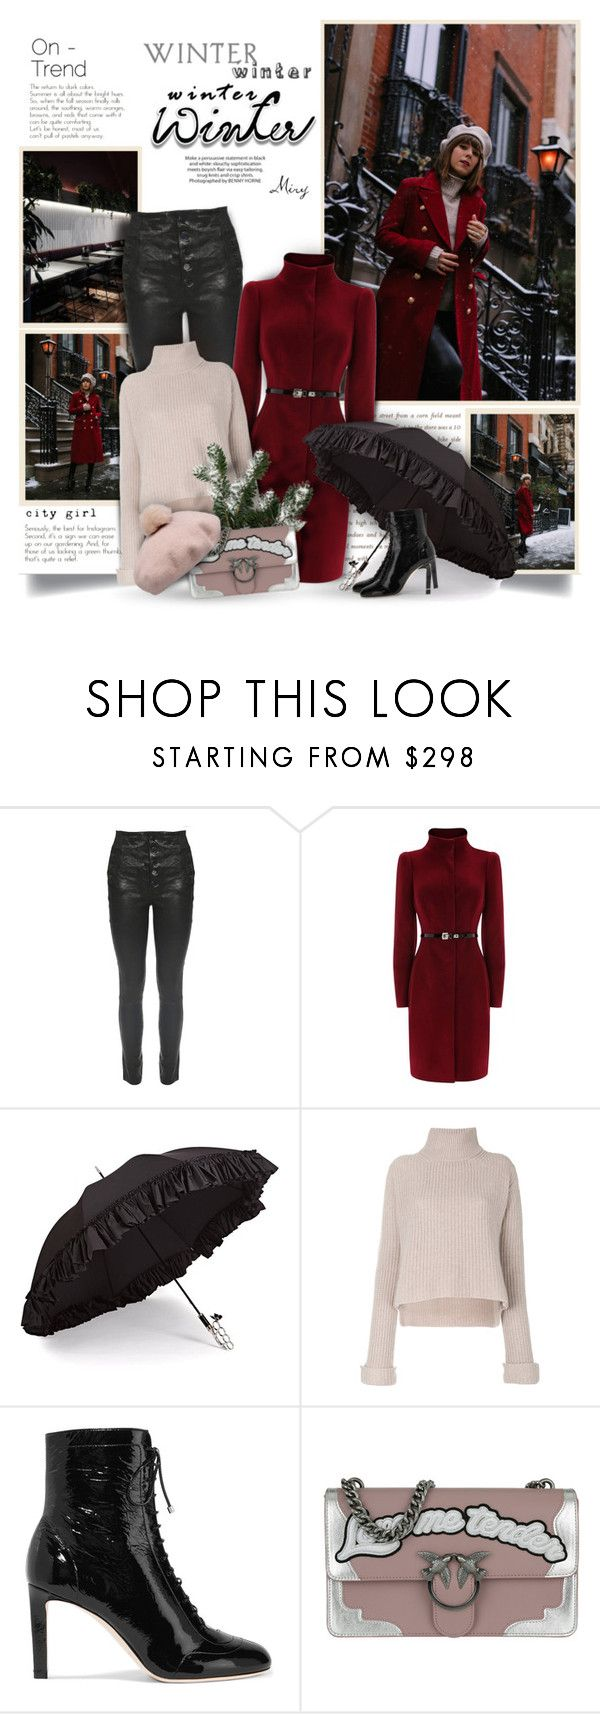 """""""On-Trend"""" by thewondersoffashion ❤ liked on Polyvore featuring J Brand, Coast, Gizelle Renee, Forte Forte, Jimmy Choo and Pinko"""